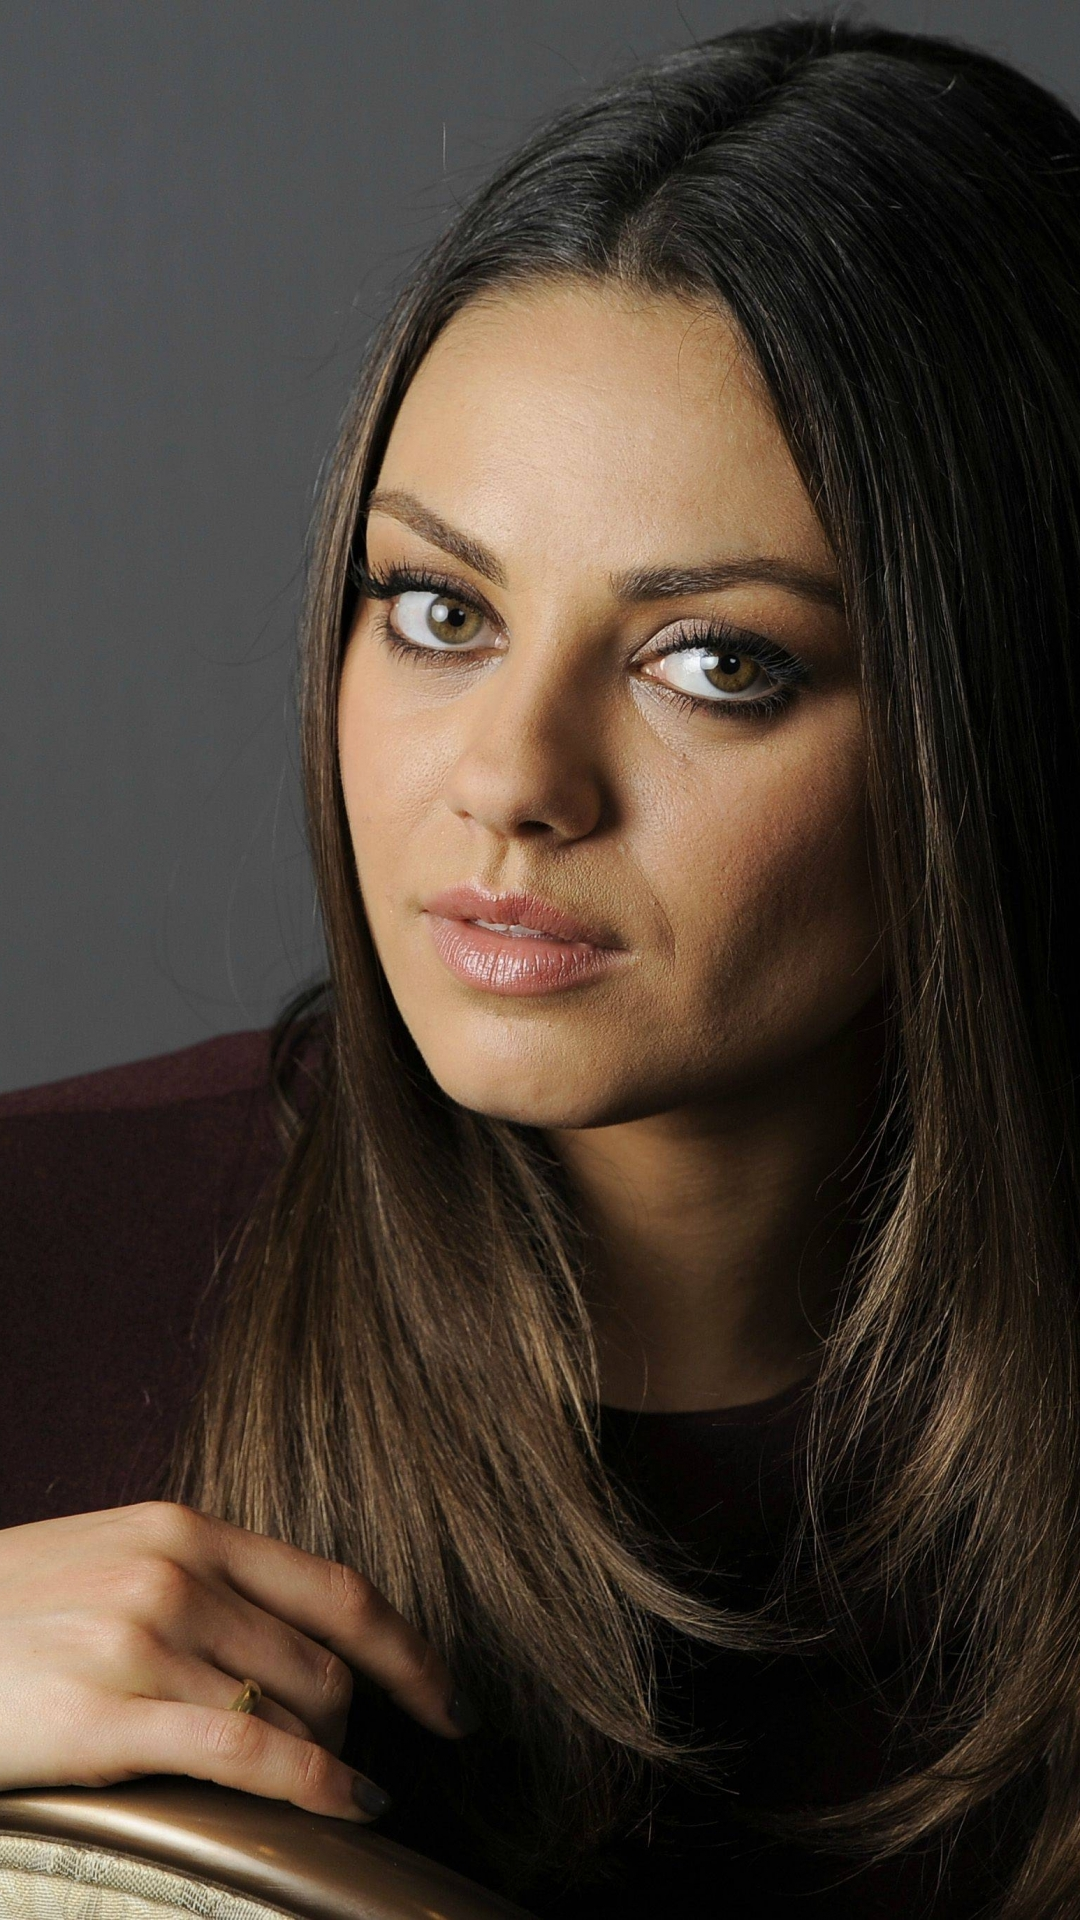 celebrity/mila kunis (1080x1920) wallpaper id: 596207 - mobile abyss